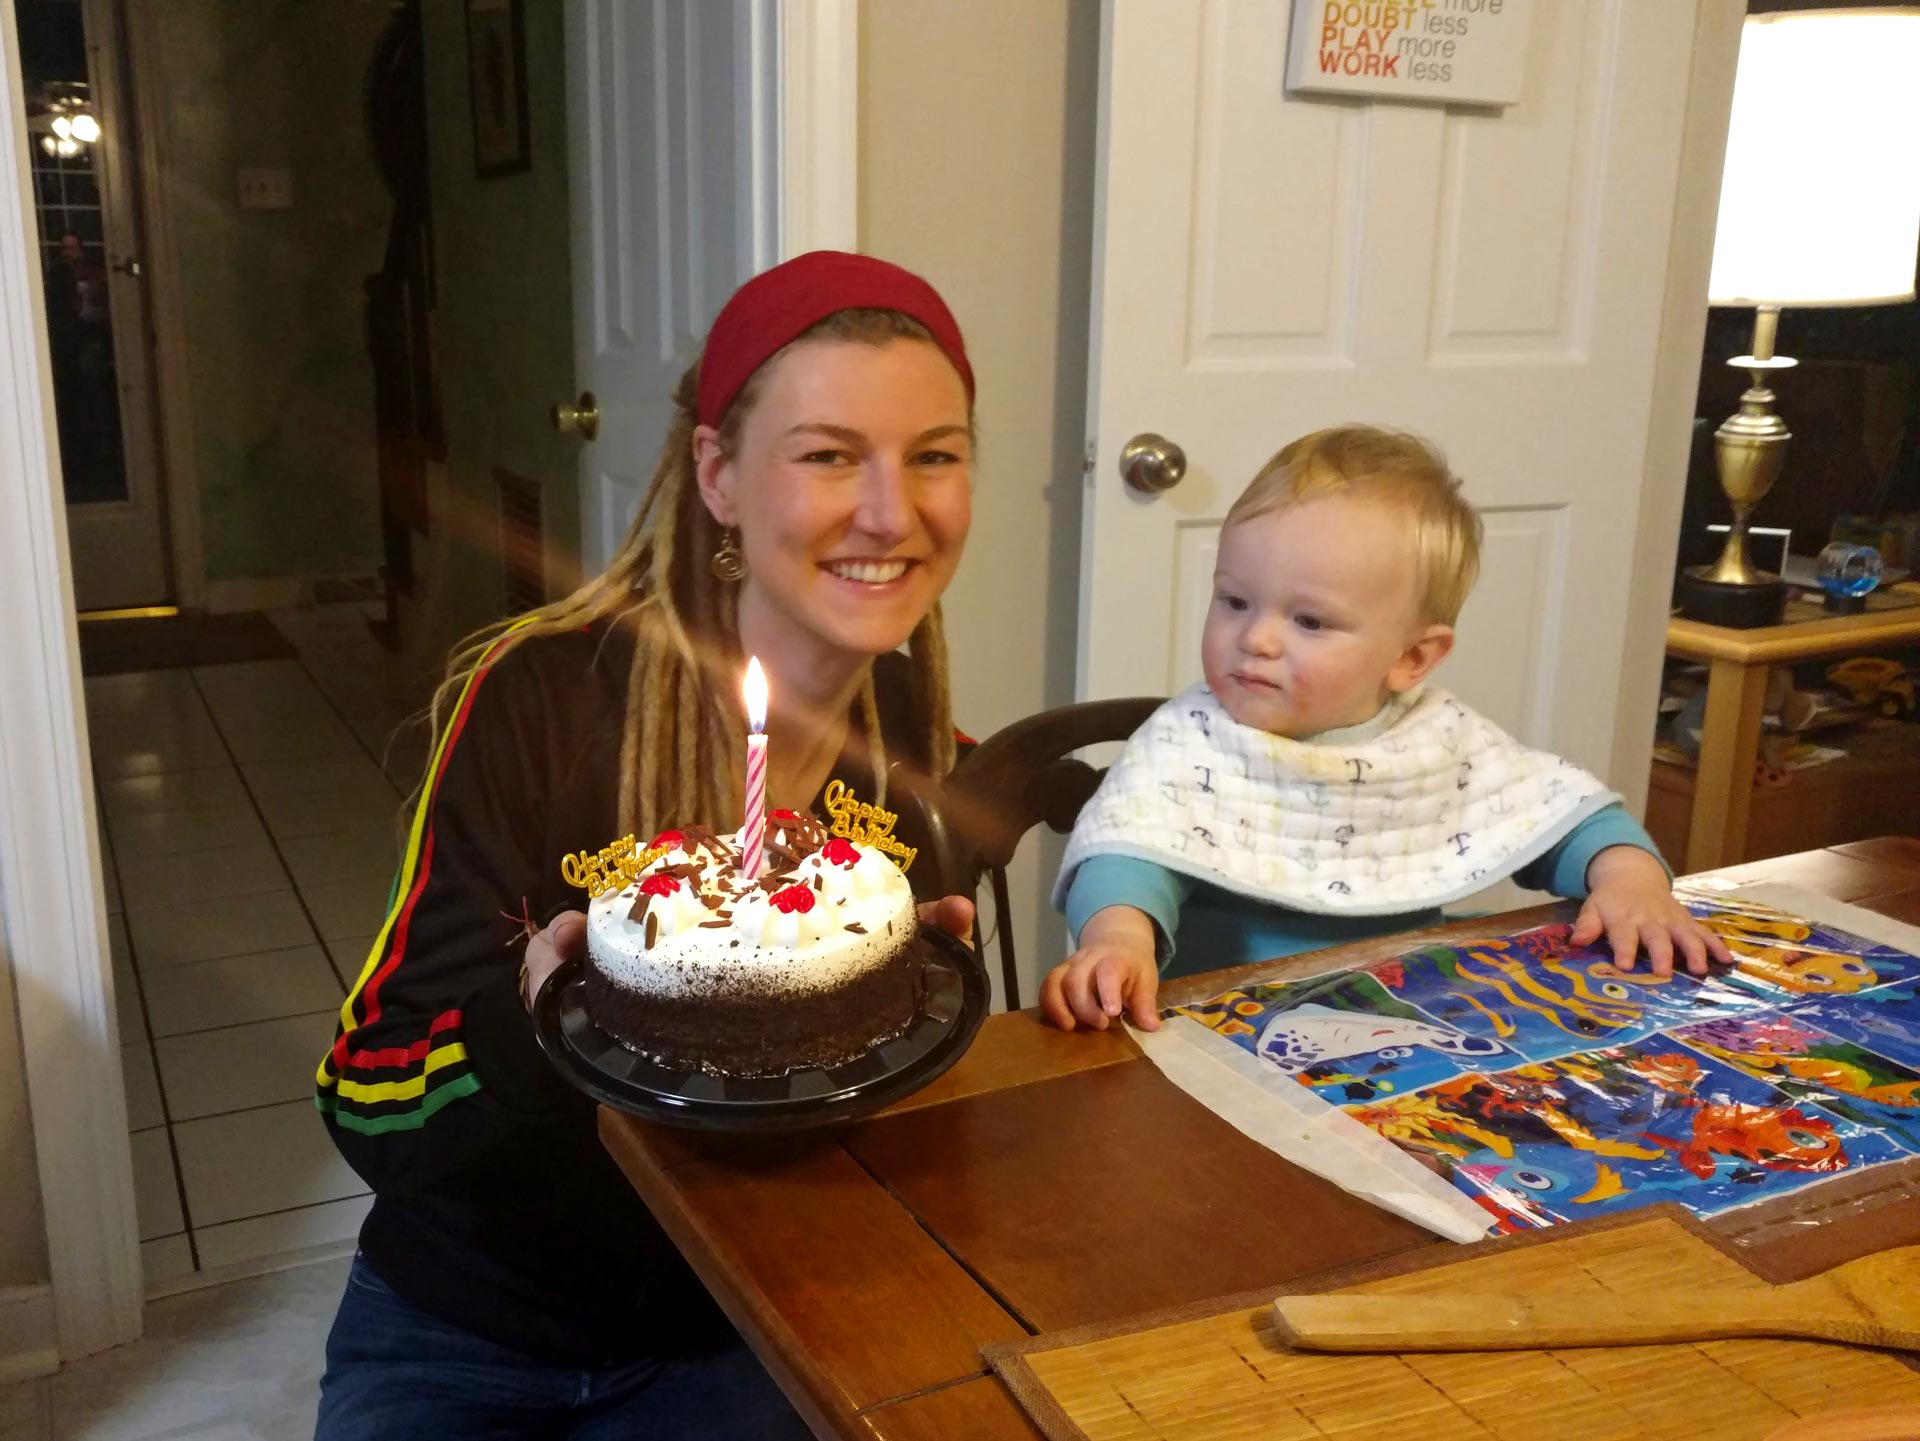 Rasta girl with birthday cake and baby looking at it in Richmond, VA